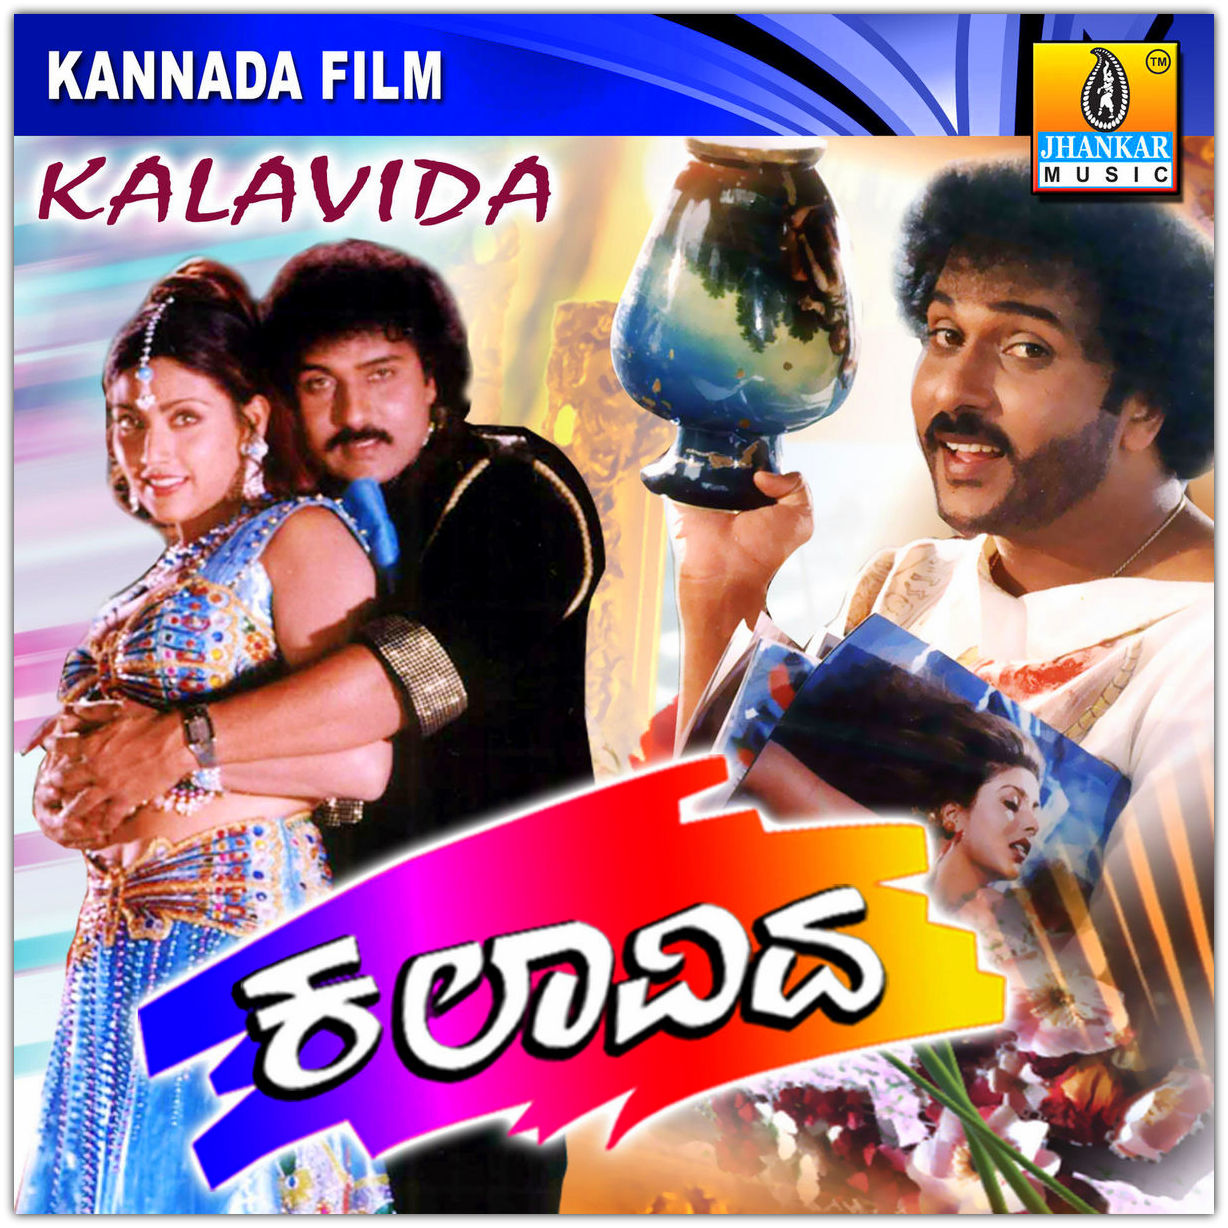 Kannada Mp3 Songs: Kalavida (1997) Kannada Movie mp3 Songs